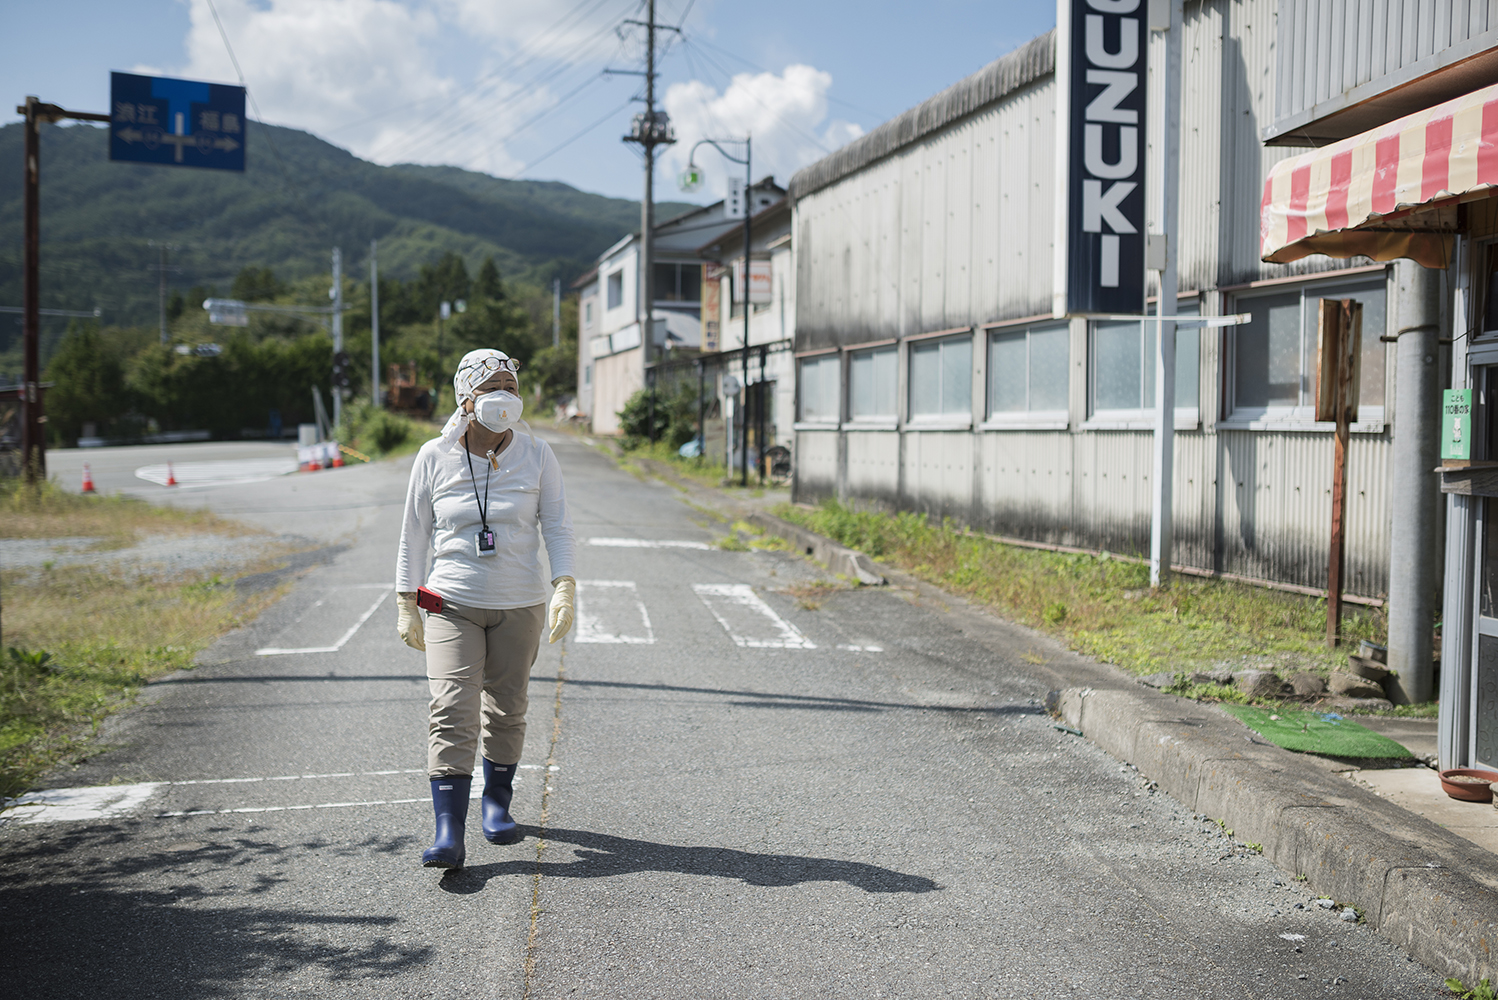 Evacuee and Fukushima survivor, Mrs Kanno walking through the empty streets of Tsushima, inside the highly contaminated exclusion zone of Namie, Fukushima prefecture. This area is closed for people to return to, however, the Japanese government plans to open a small area of Tsushima as early as 2023. The levels of radiation measured by Greenpeace in this highly contaminated area mean that it will be many decades and beyond the end of the century before radiation levels will even approach government targets.